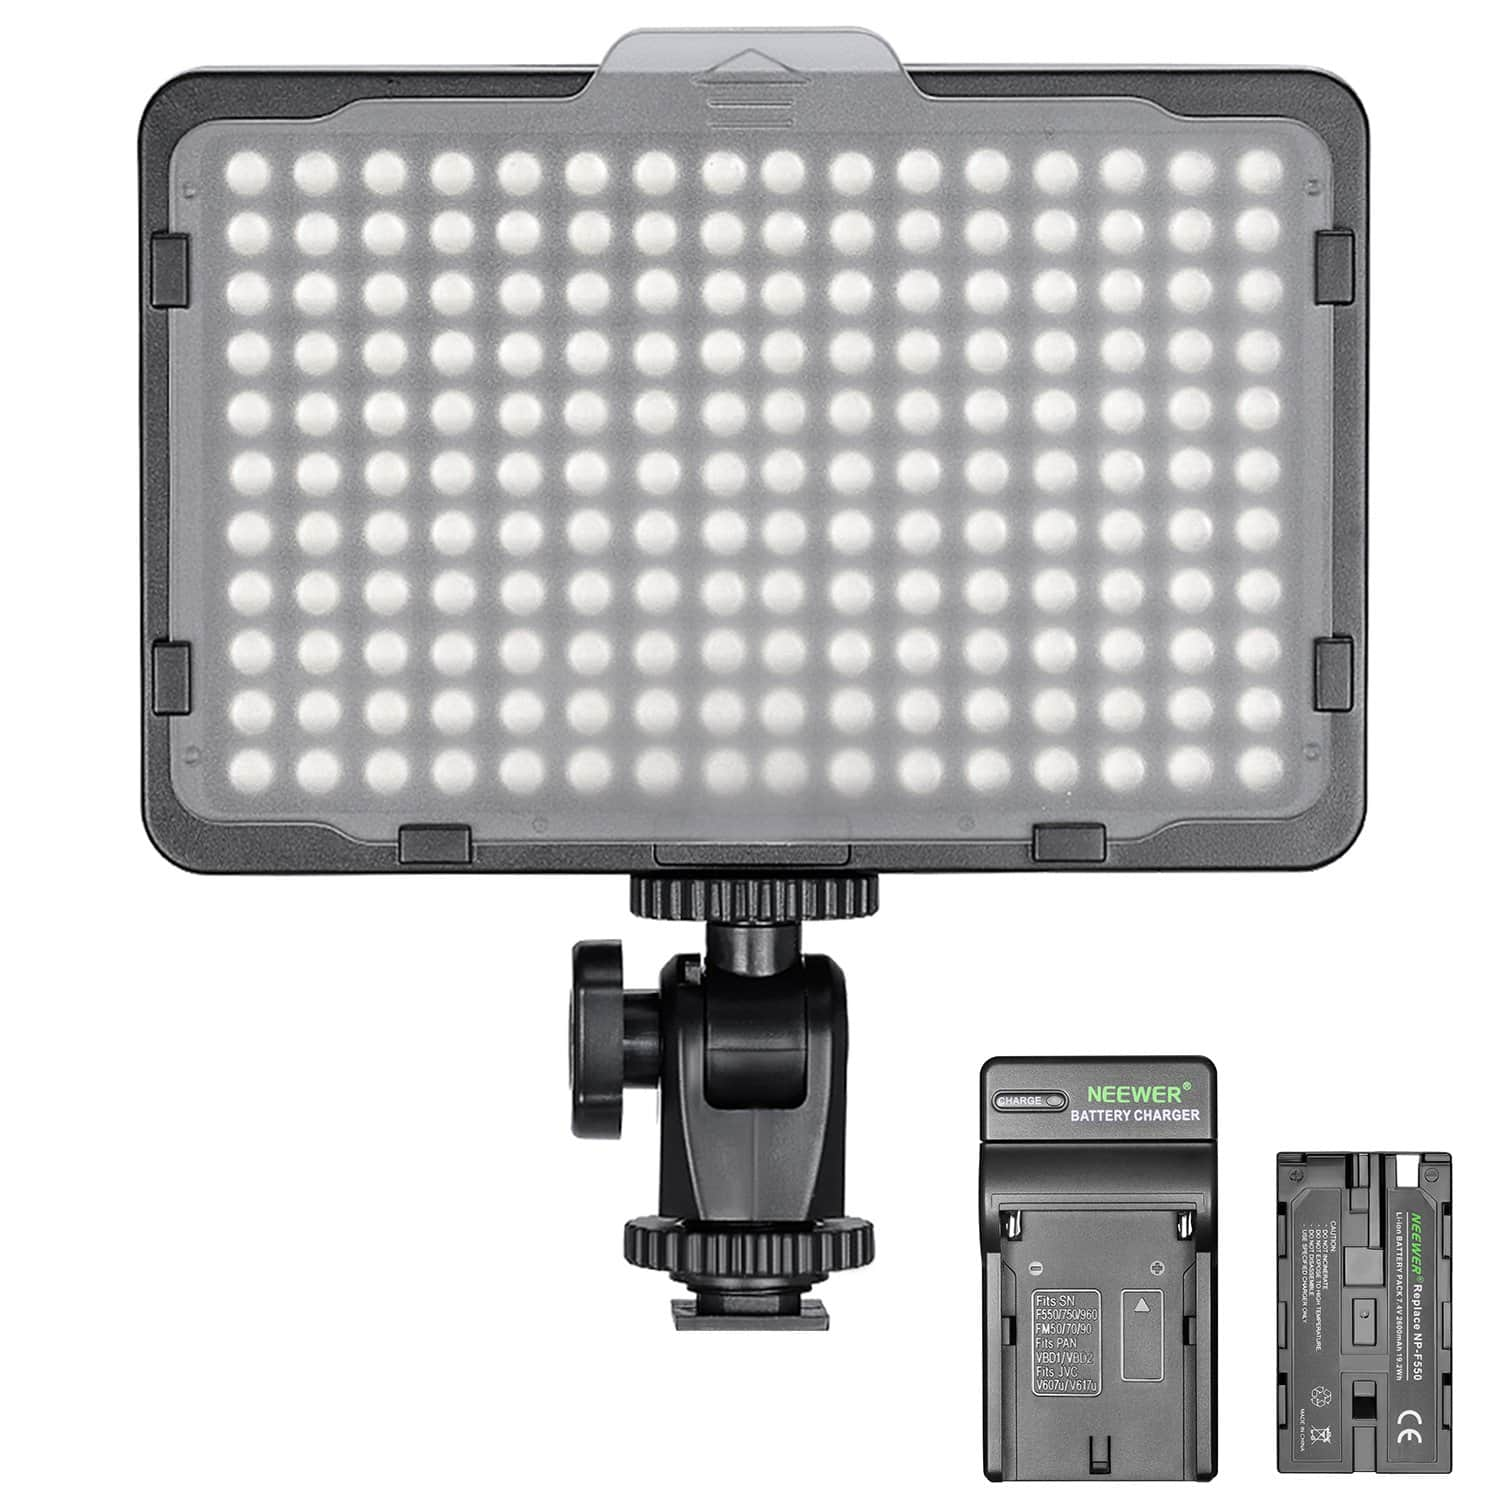 Neewer Dimmable 176 LED Video Light w/ Battery - $27.99 + FS